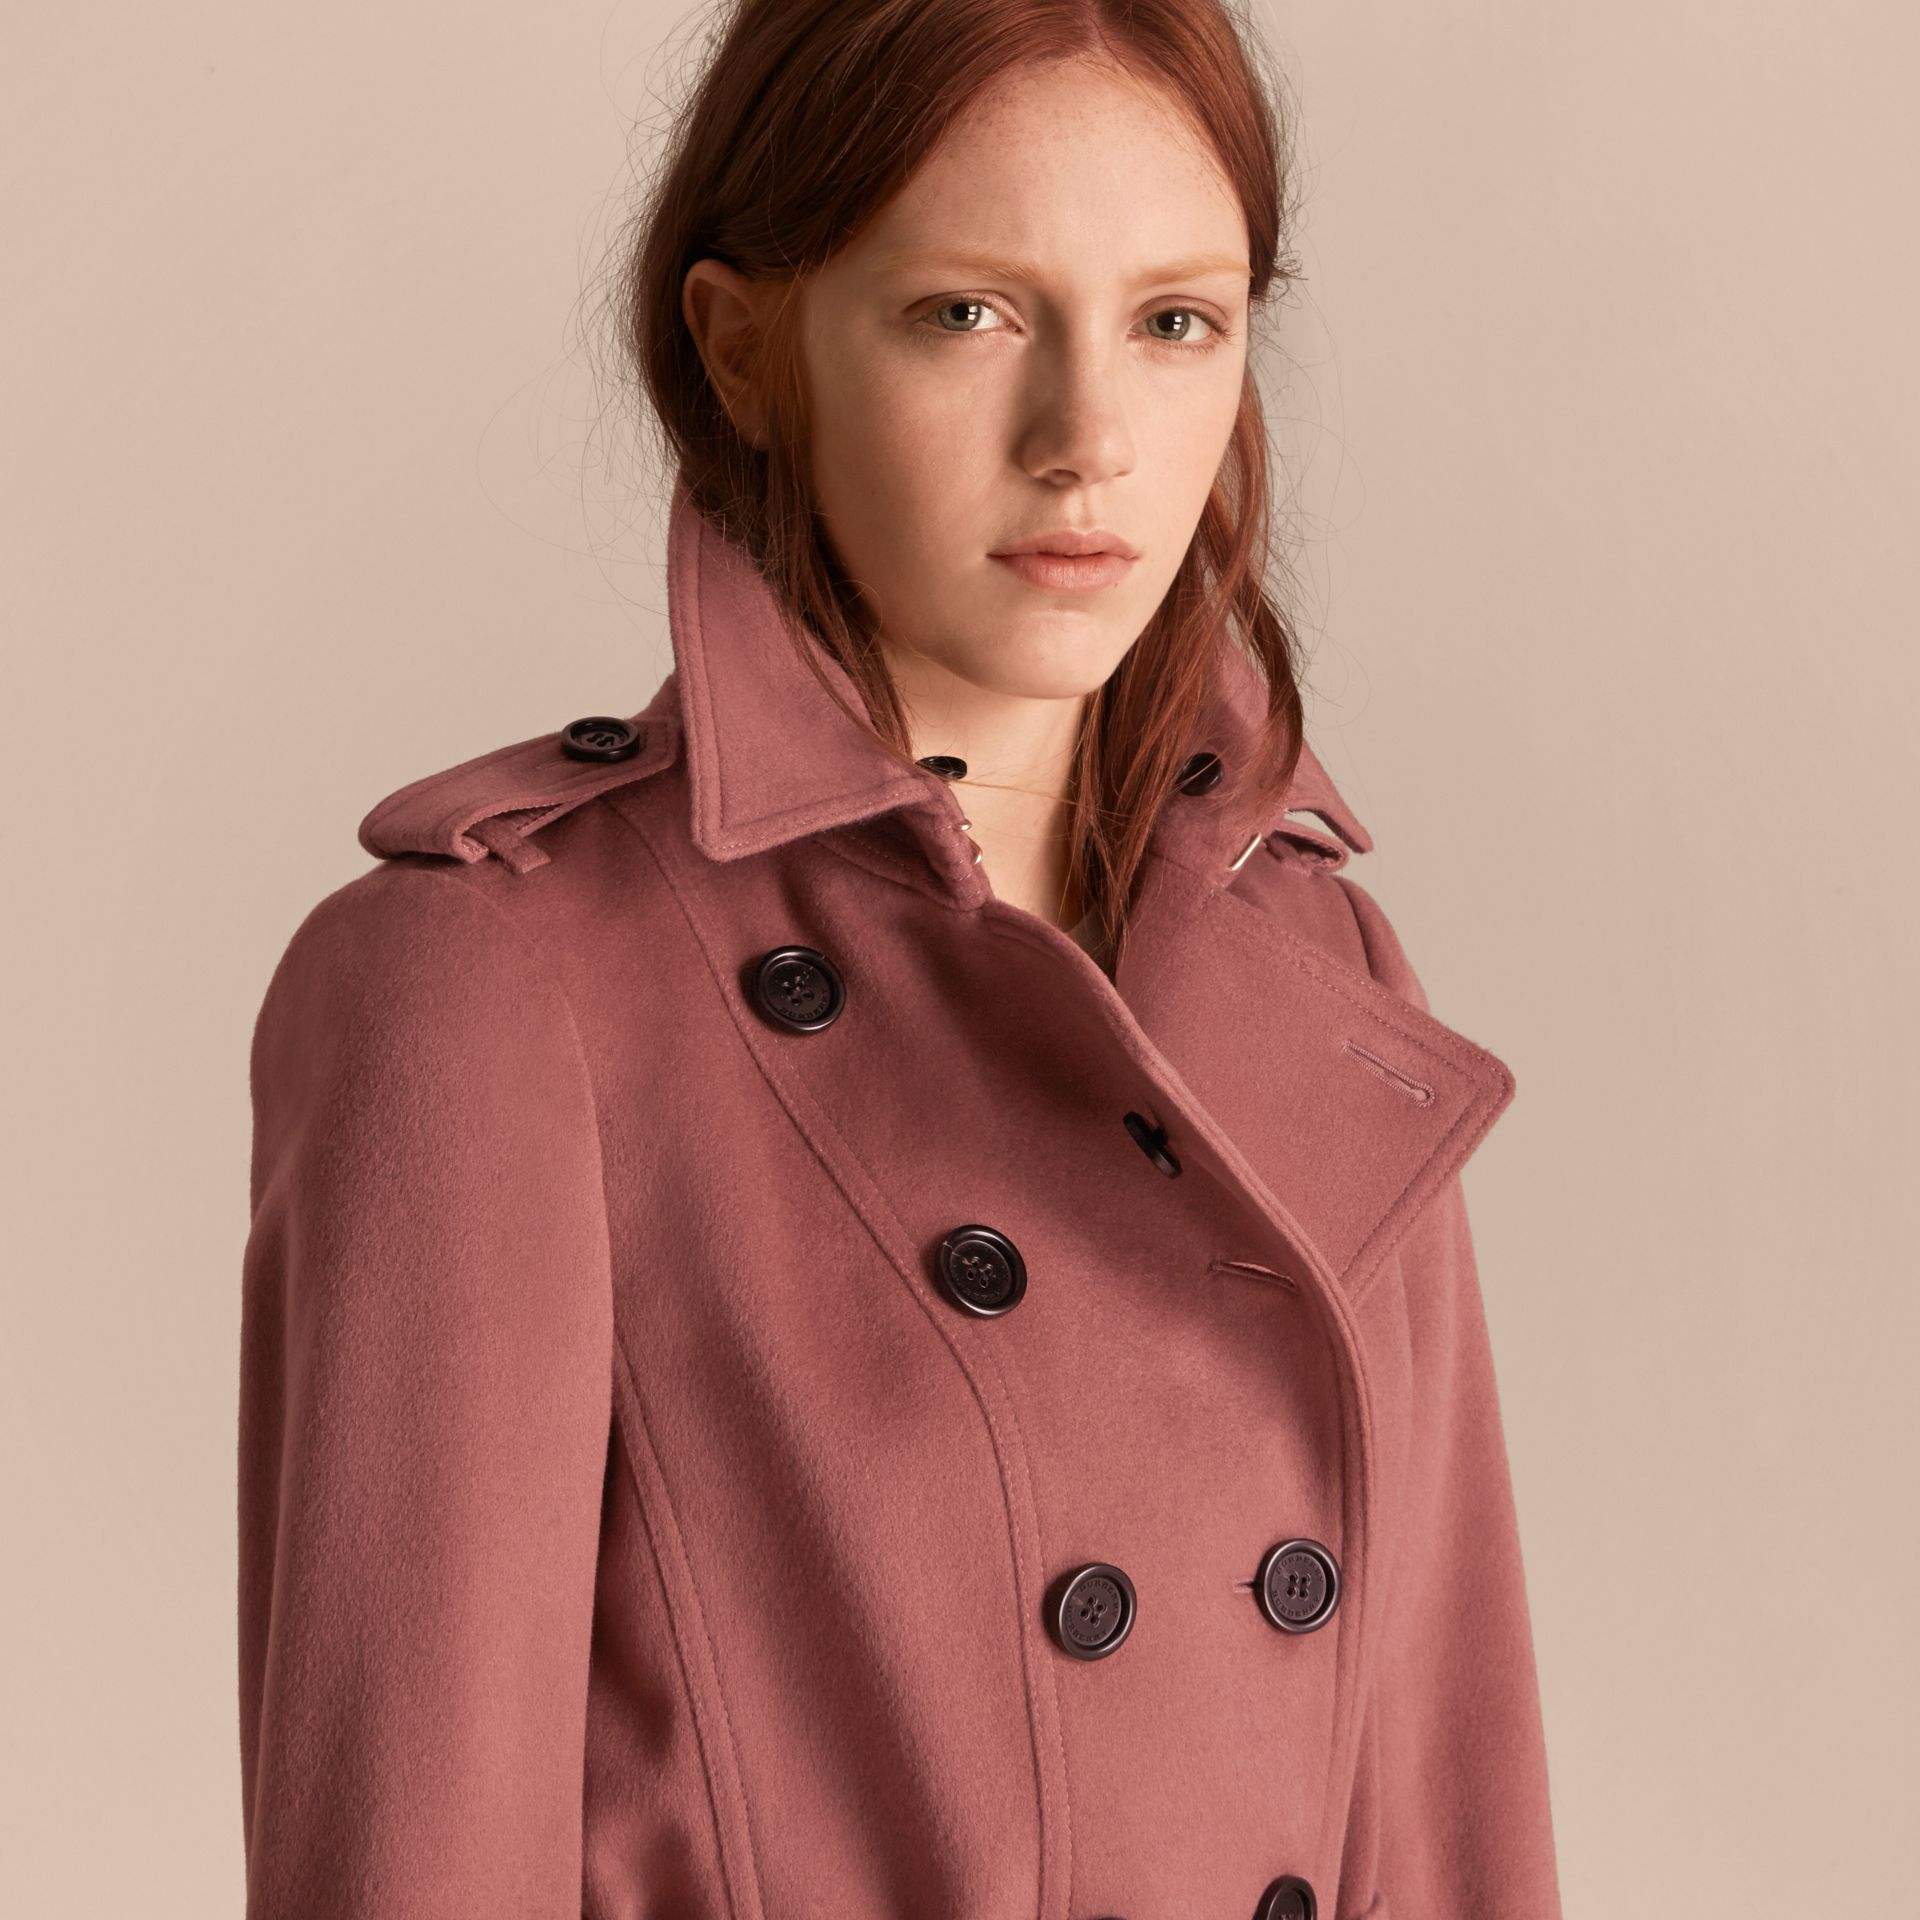 Antique rose Wool Cashmere Trench Coat with Detachable Fur Collar - gallery image 7